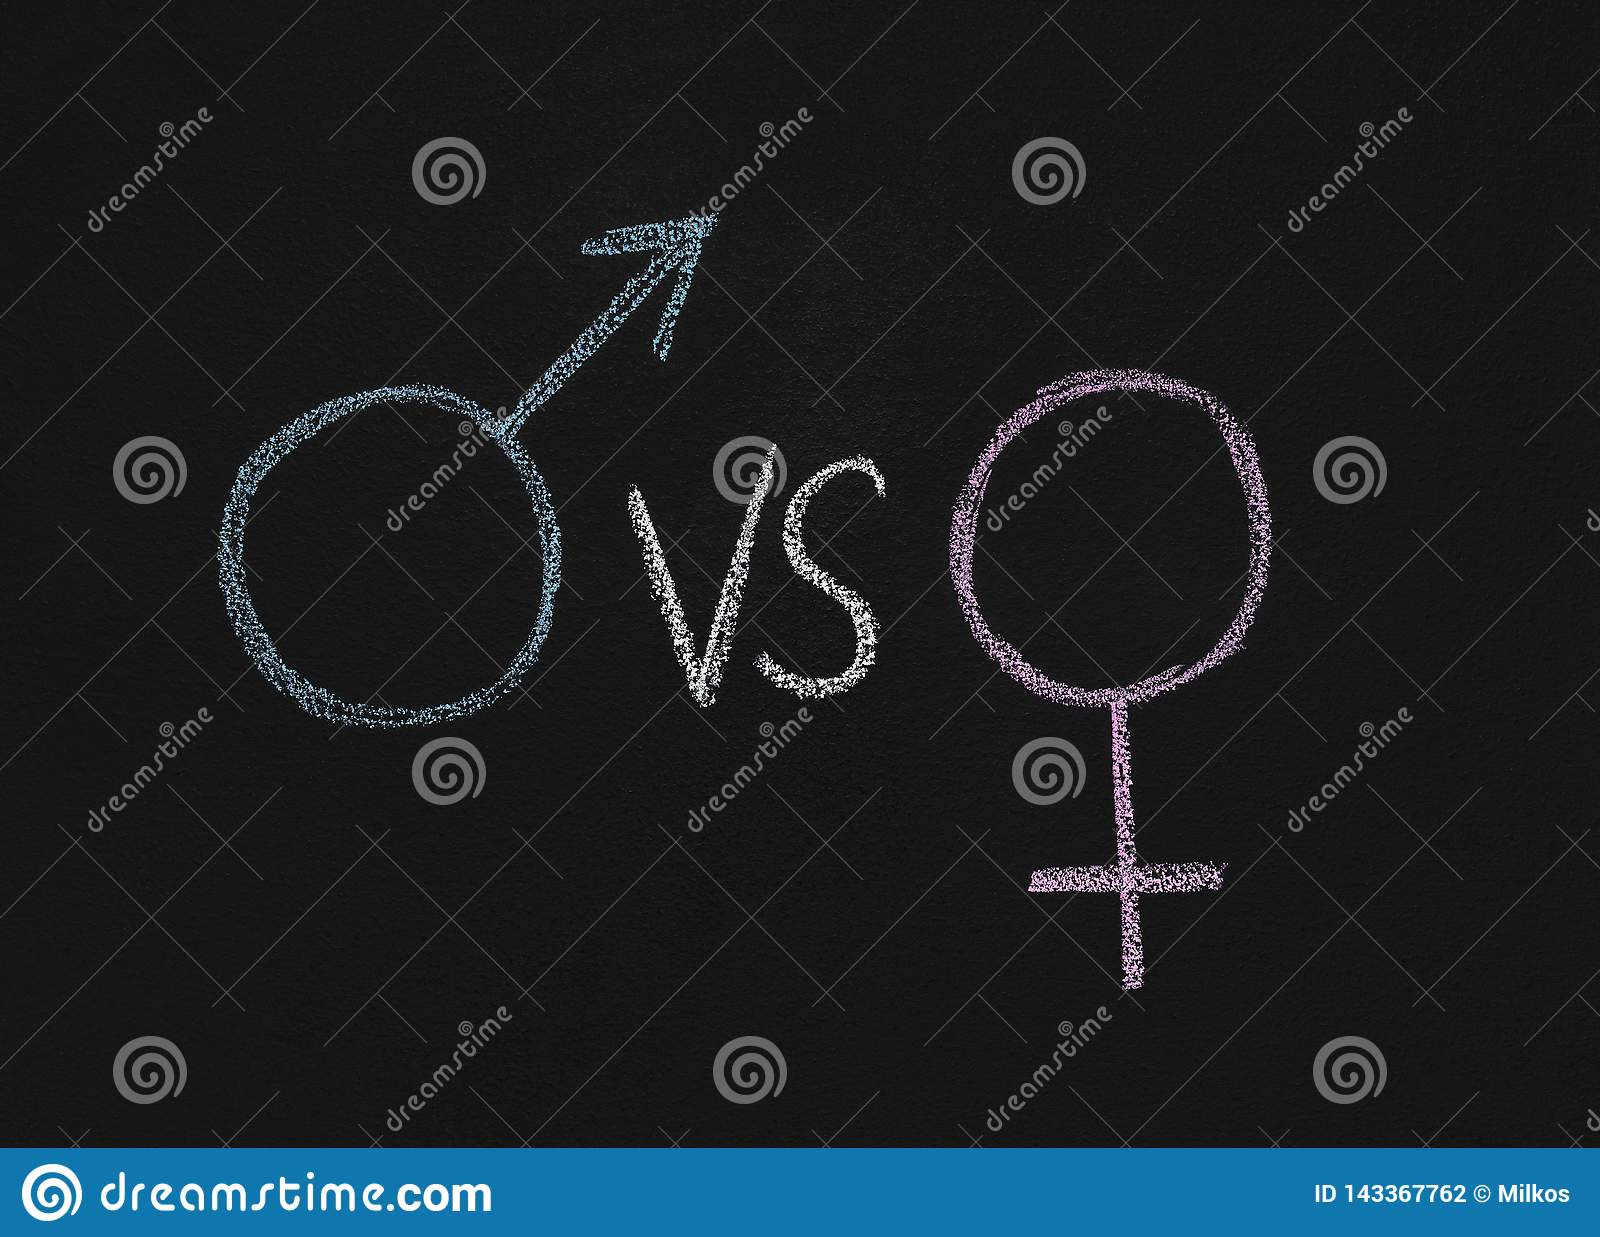 Male gender symbol vs female on chalkboard